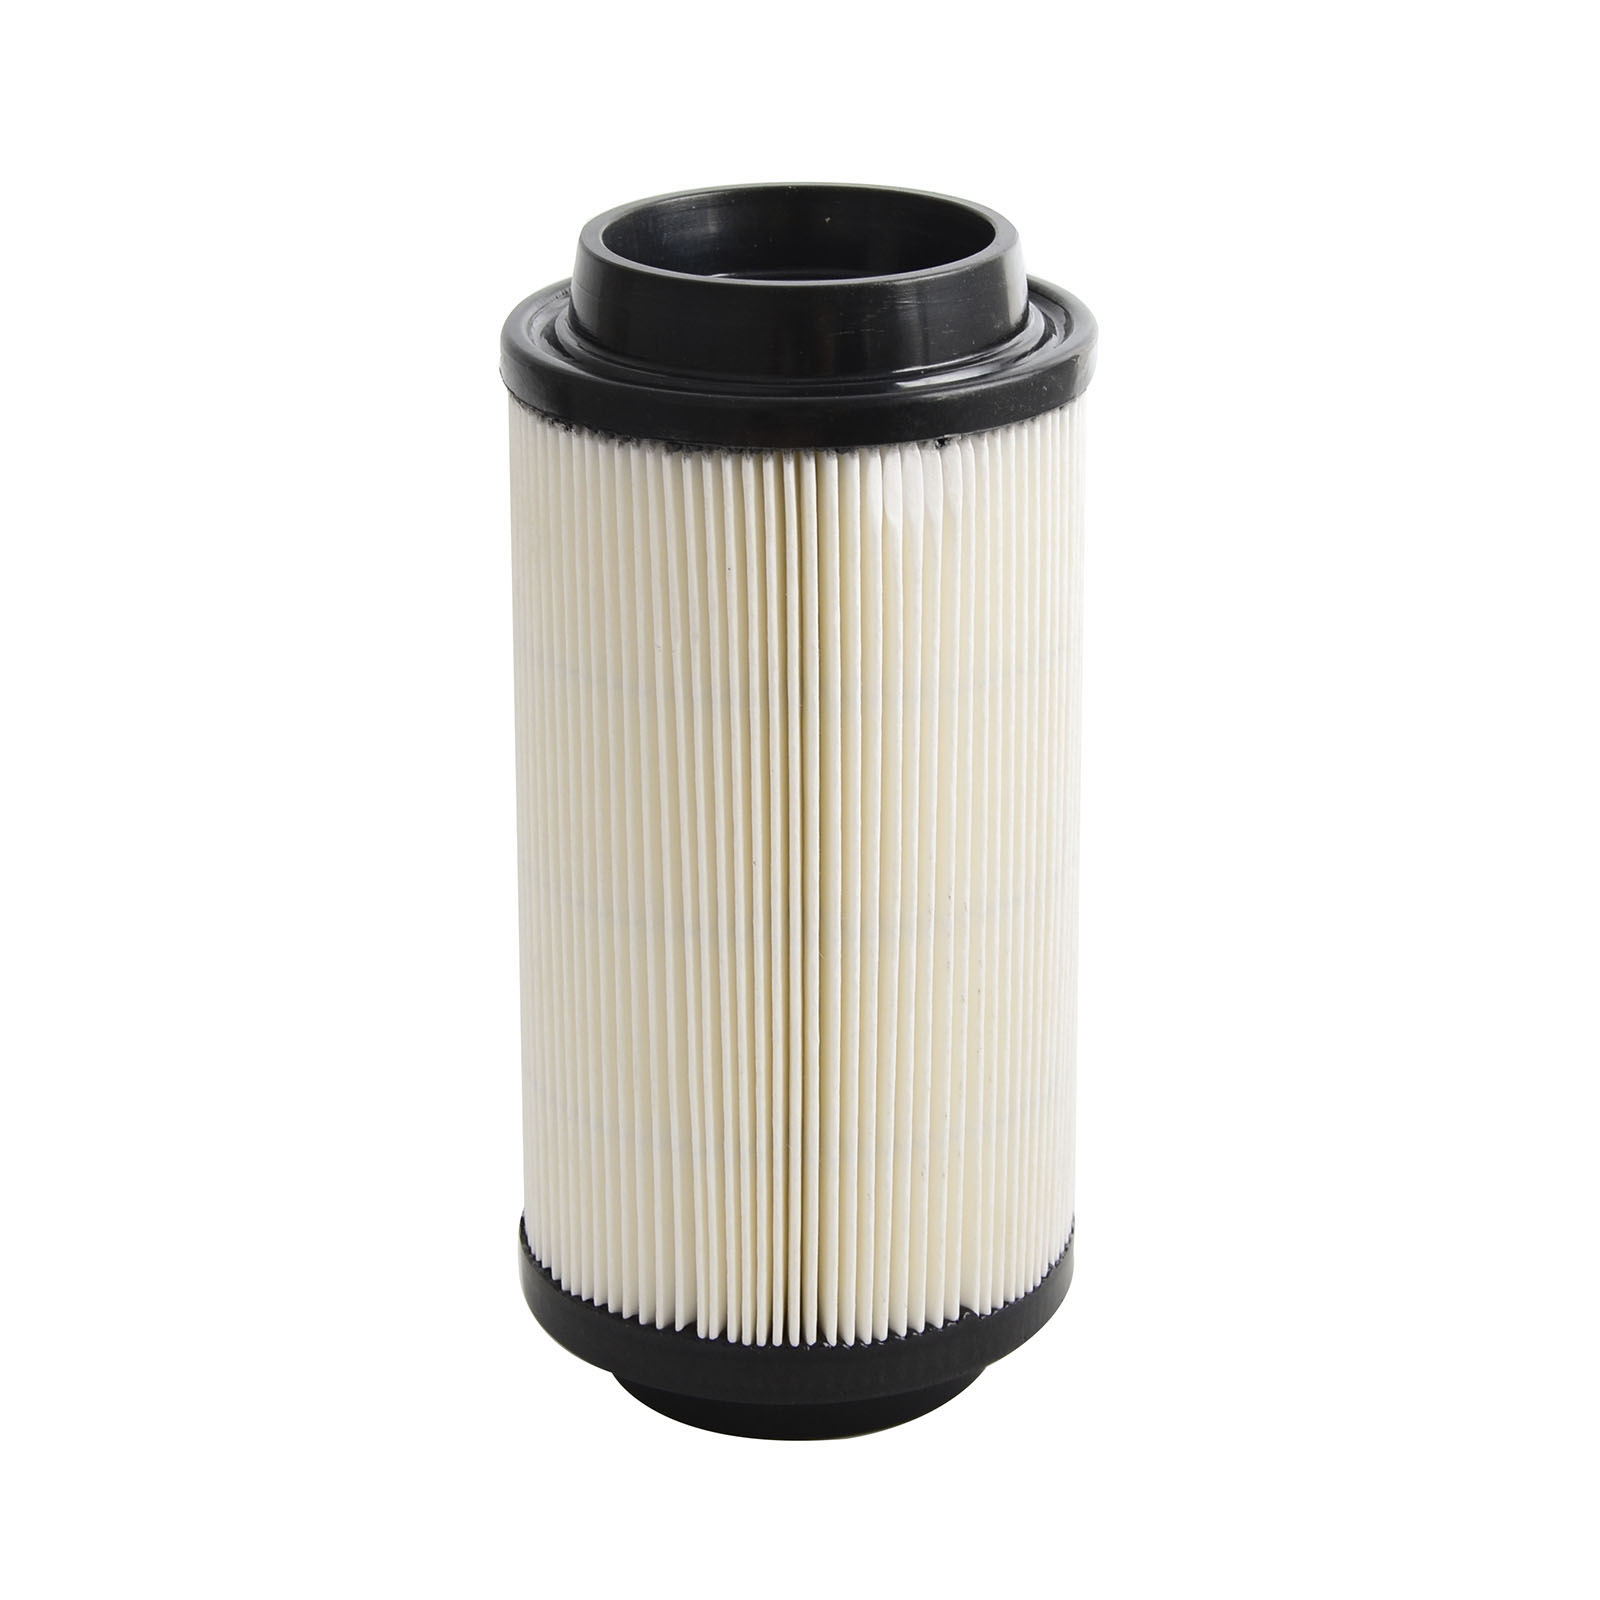 NICECNC Air Filter For Polaris Sportsman Scrambler 400 500 600 700 800 550 850 #7080595 left front brake master cylinder for polaris sportsman 400 500 550 600 700 800 atv magnum 425 2x4 4x4 300 450 400